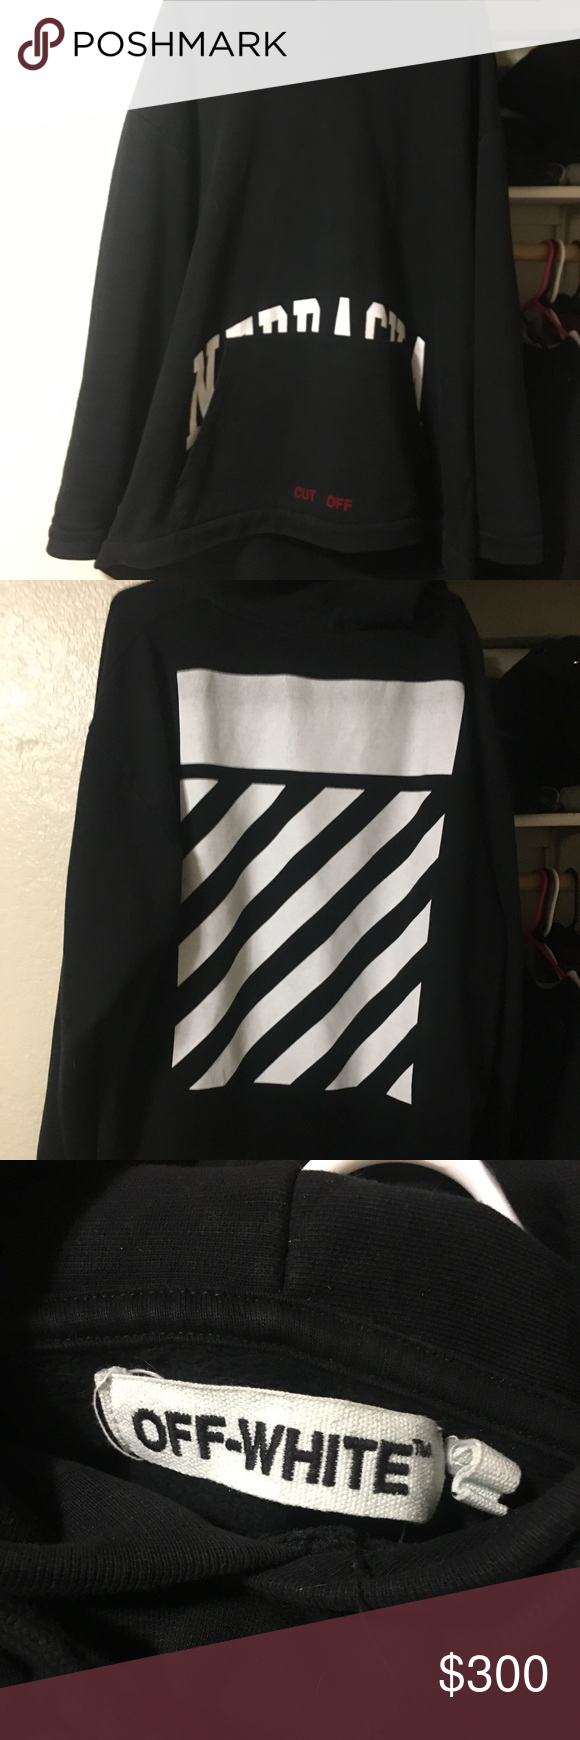 Off White Ss13 Sweatshirt Ss13 Great Condition Pre Owned Has Been Washed Once Authentic Heads Up The Sweatshirt Shirt Sweatshirts Sweatshirts Hoodie [ 1740 x 580 Pixel ]